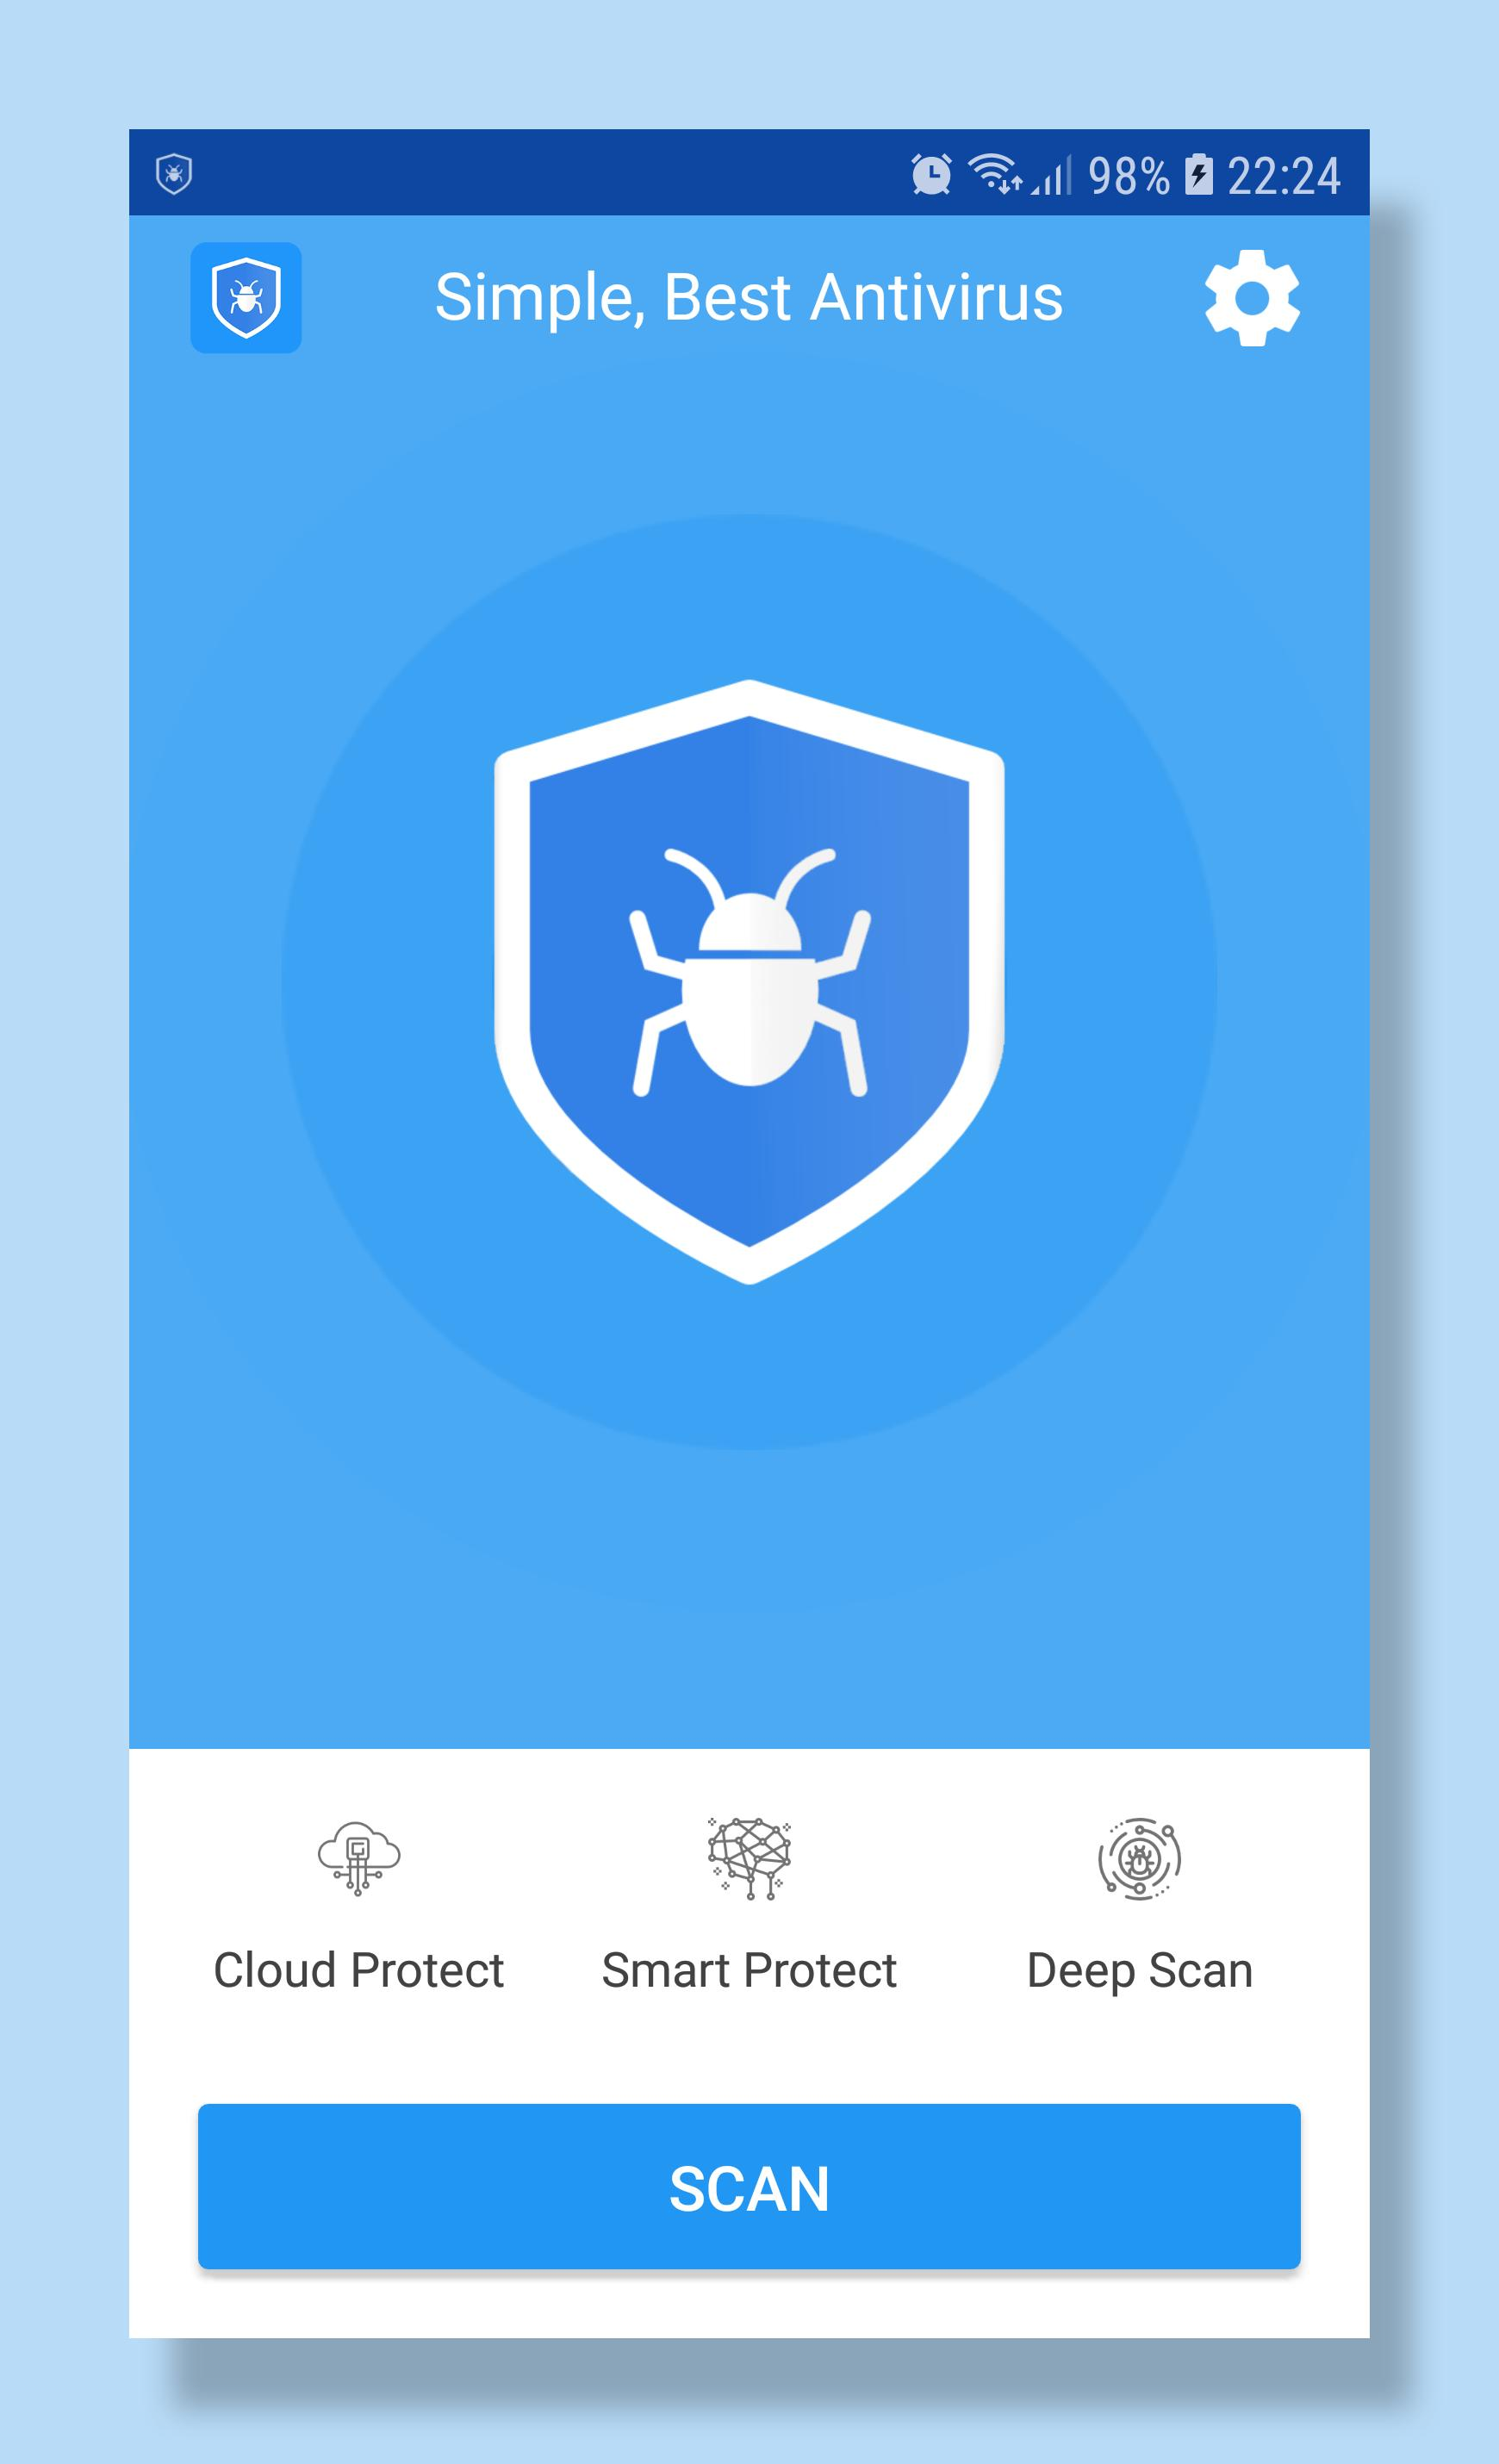 Simple - Best Antivirus for Android - APK Download